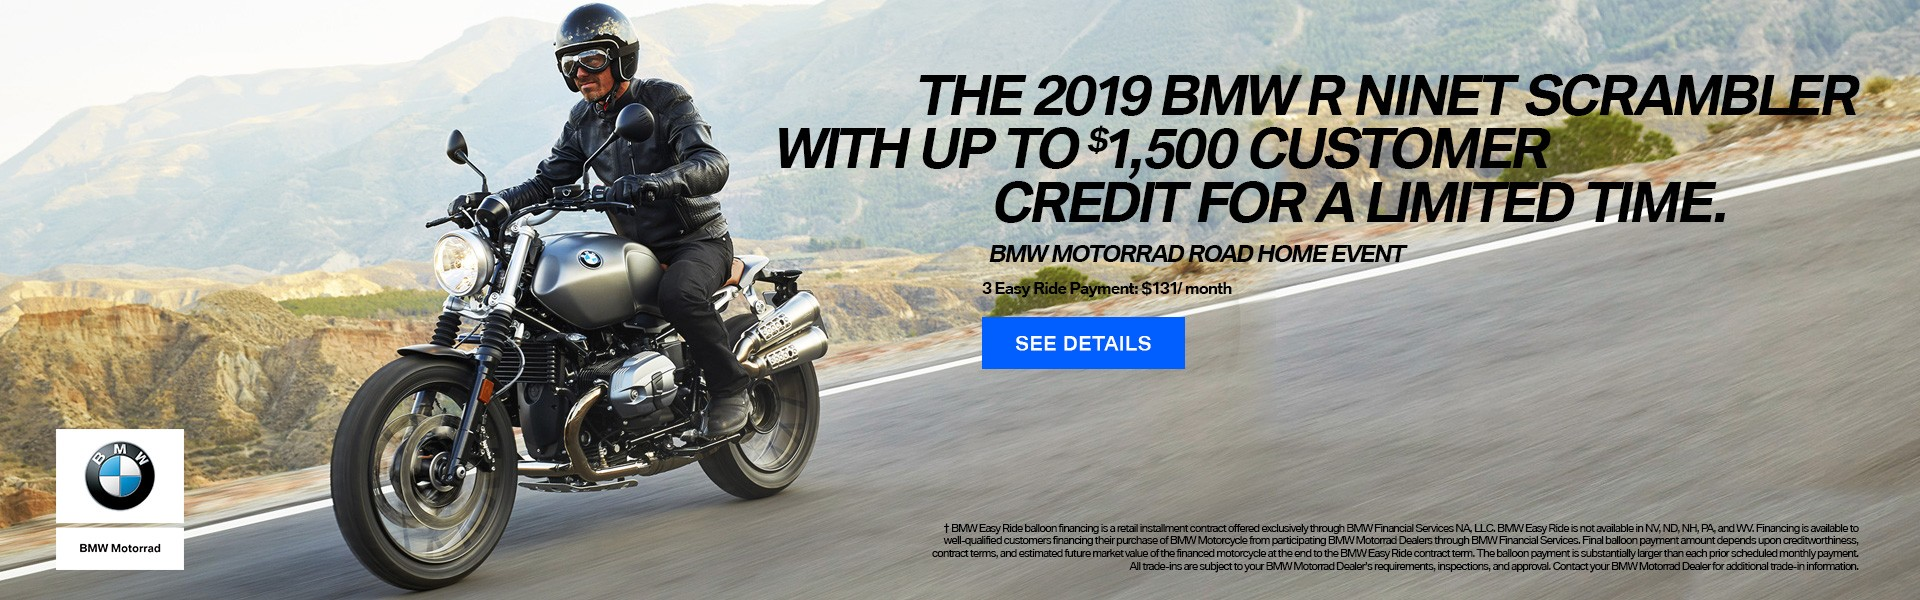 The 2019 BMW R NINE T SCRAMBLER with up to $1500 Customer Credit for a limited time.